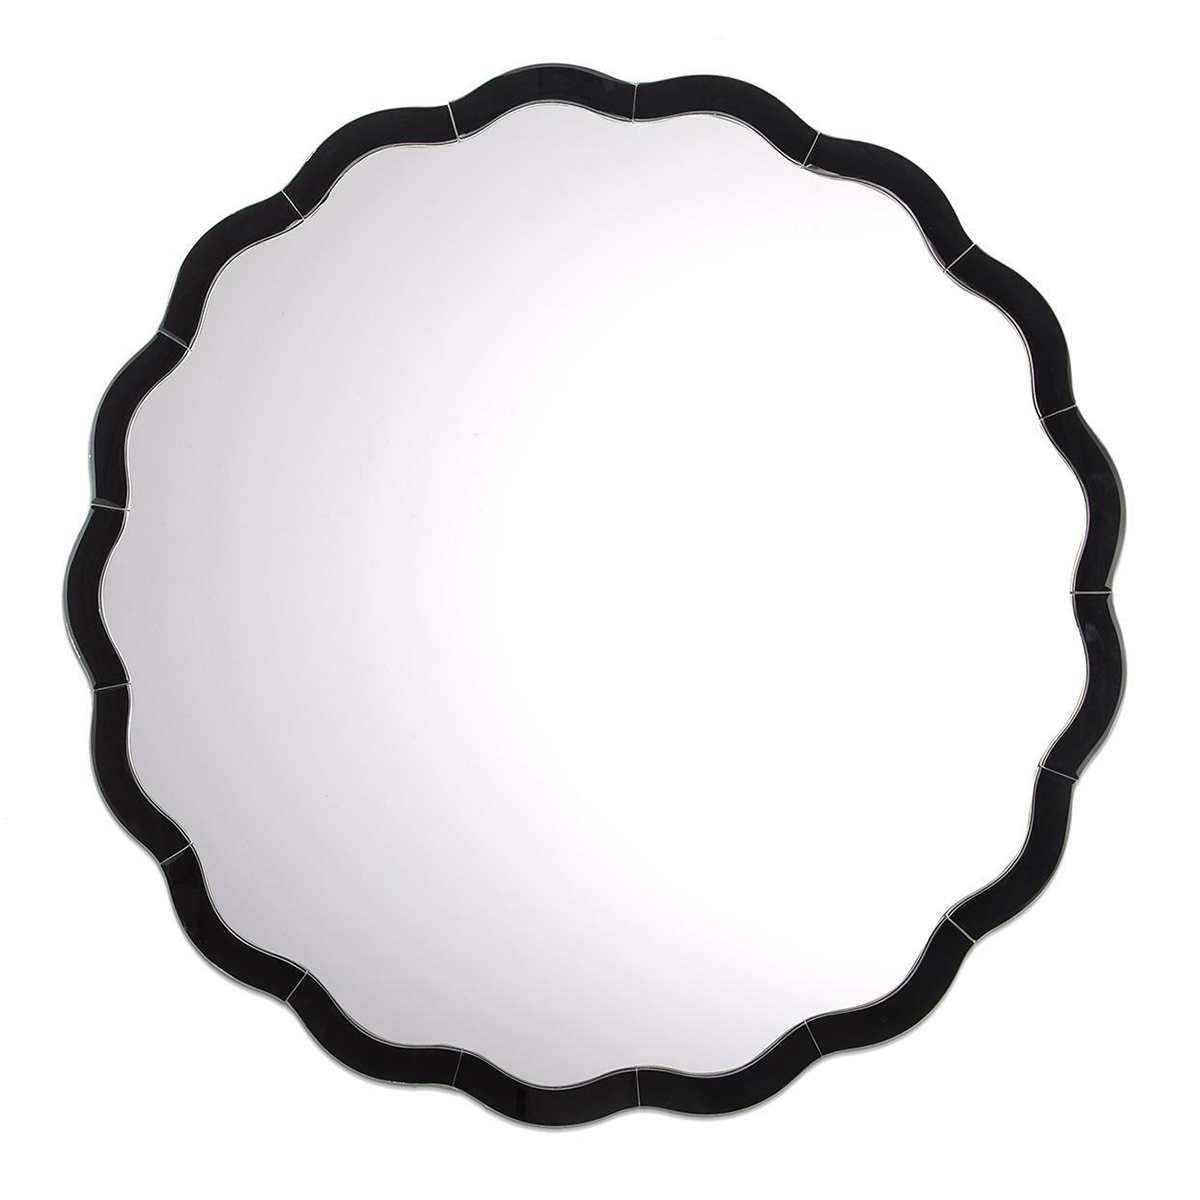 Sasha Round Scalloped Mirror - Black